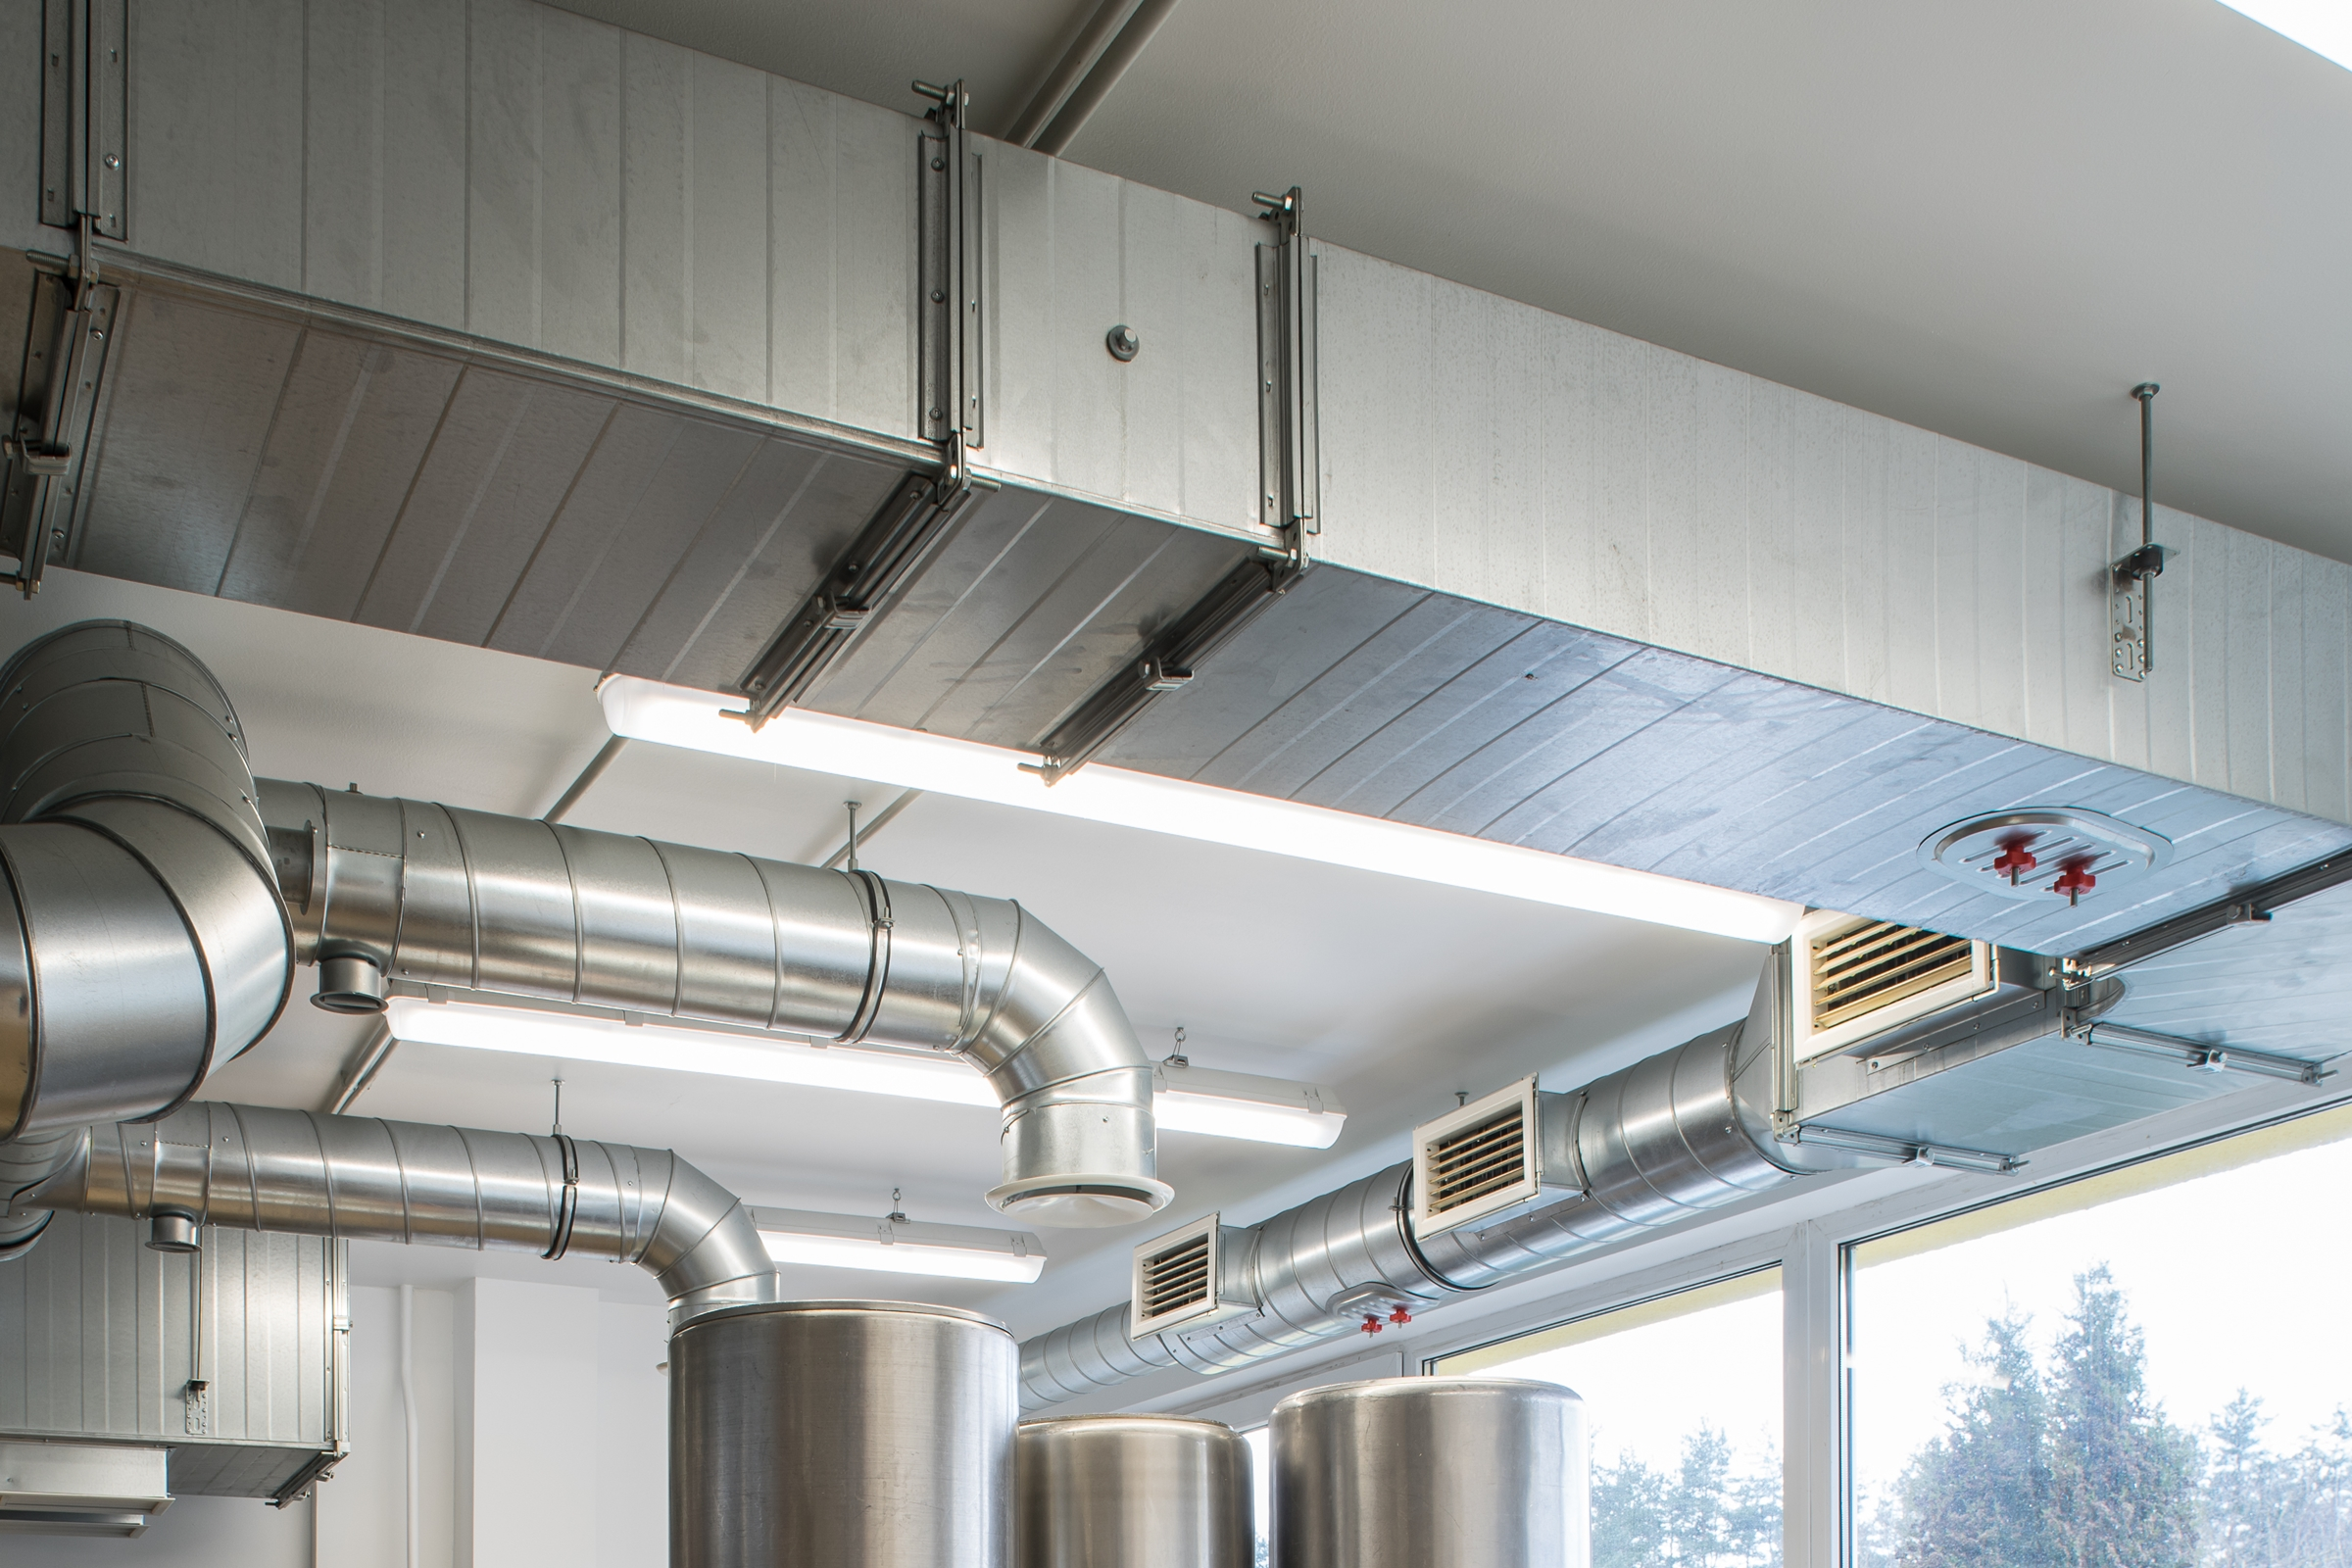 HVAC units integrated into a PLC-based Energy Management System